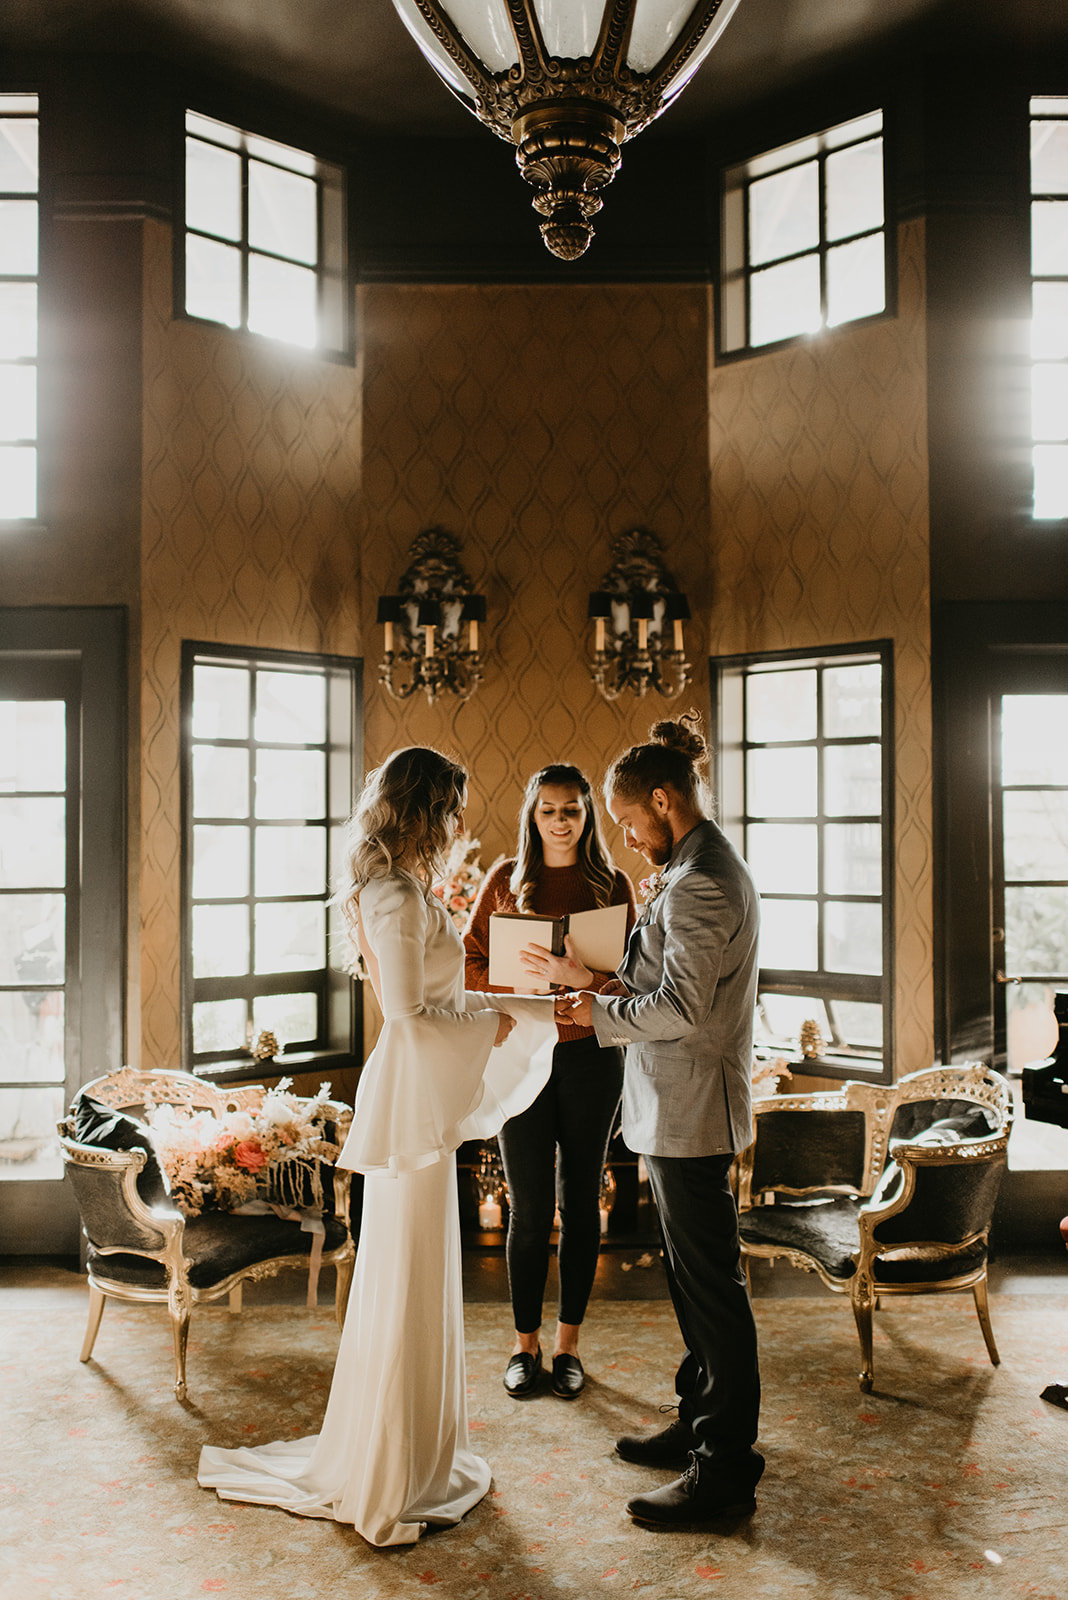 Britty + Beau - Elopement - The Ruins_ Seattle_ WA - Kamra Fuller Photography - Runaway With Me Elopement Collective-105